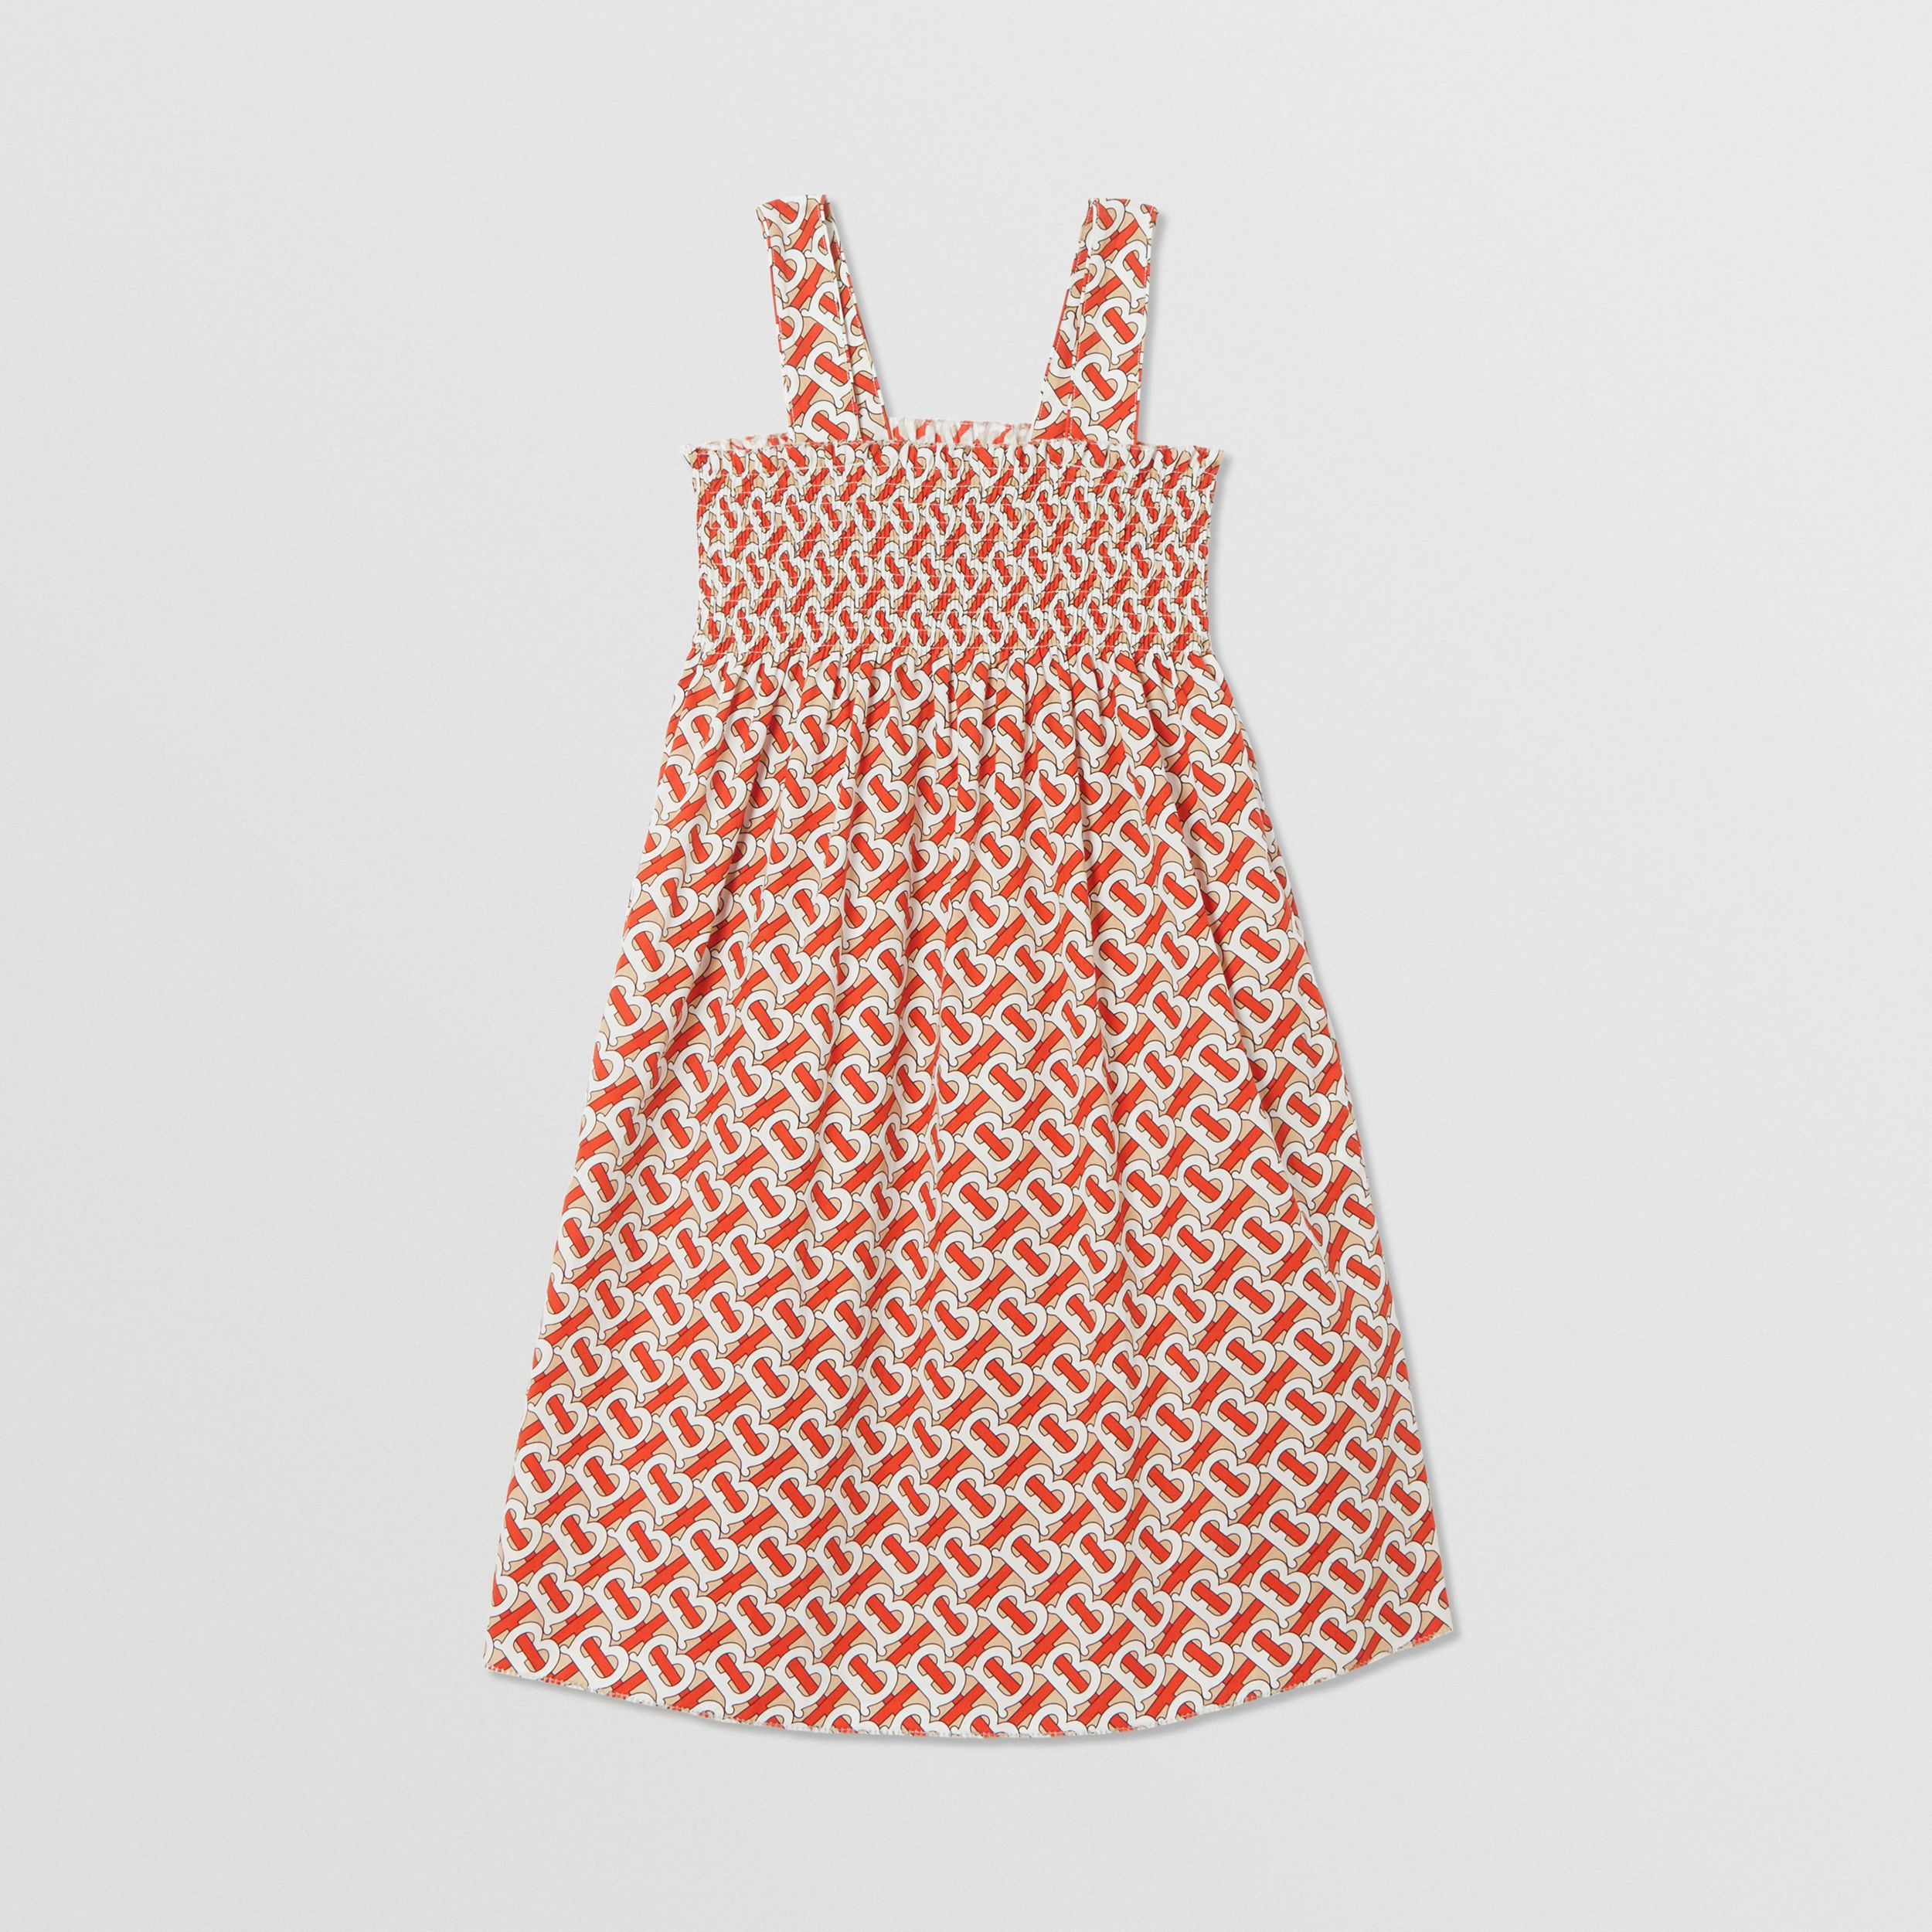 Smocked Monogram Print Cotton Poplin Dress in Vermilion Red | Burberry - 1